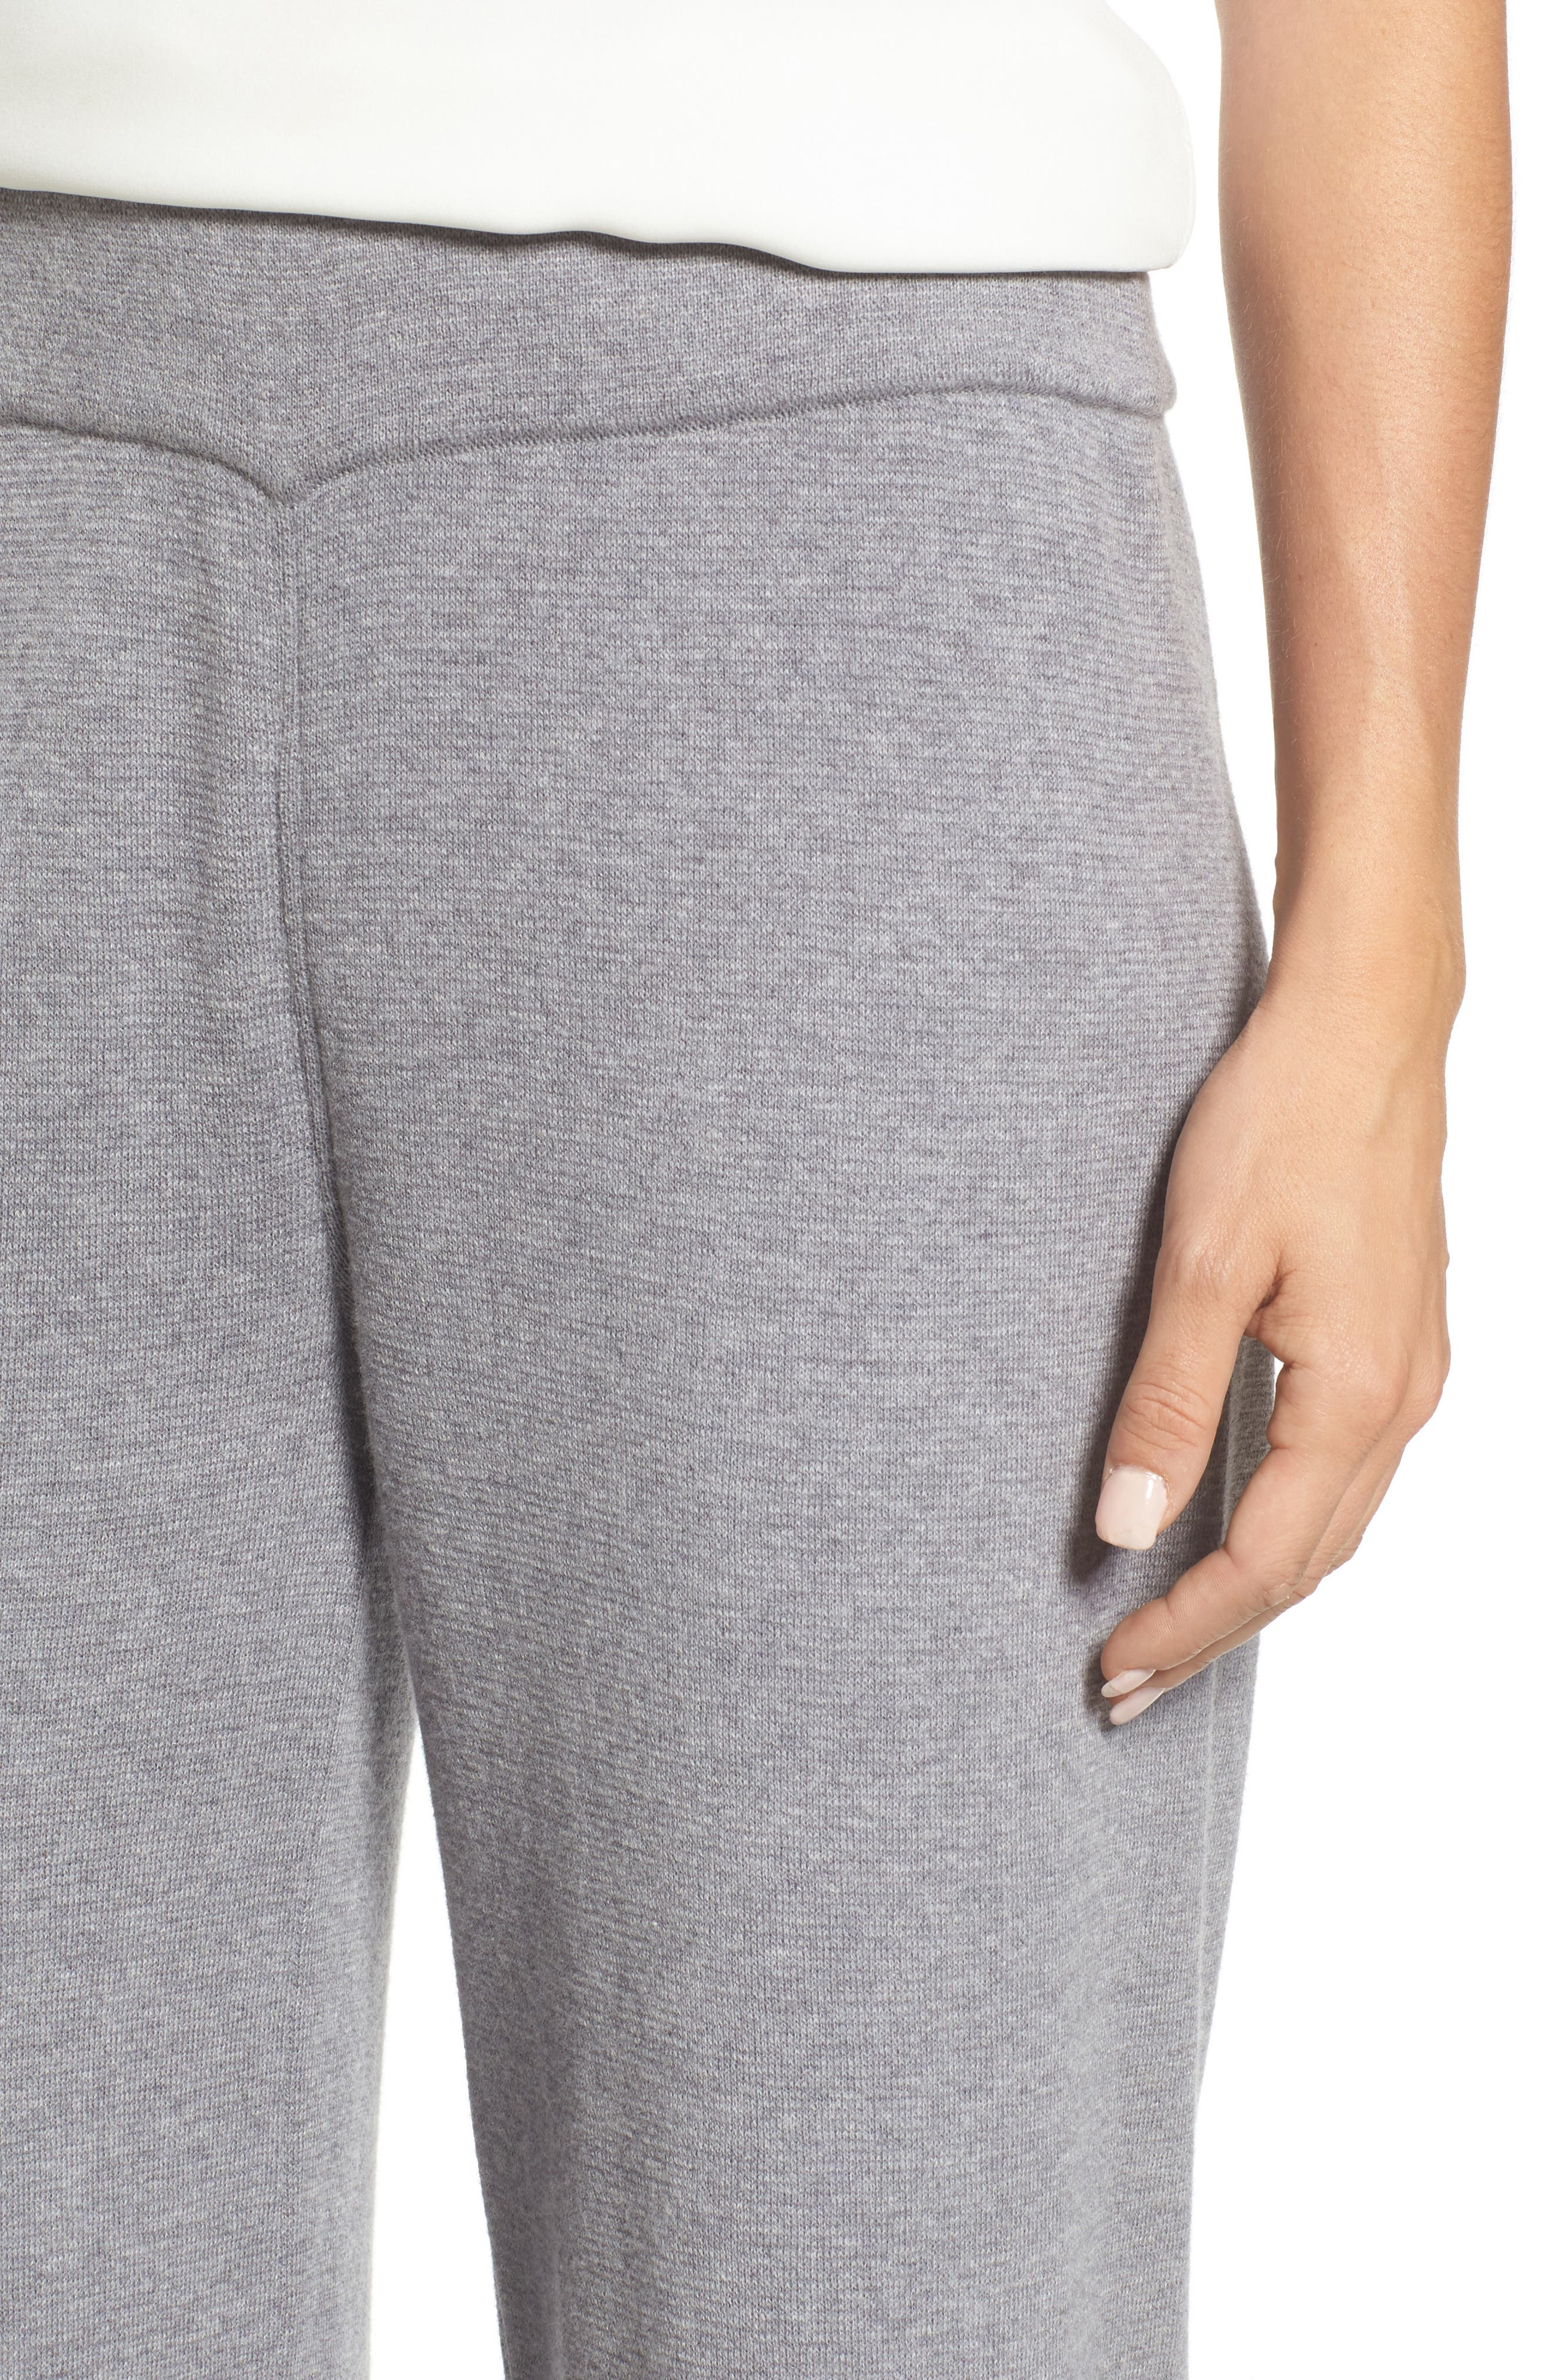 Heathered Knit Pants,                             Alternate thumbnail 4, color,                             Warm Grey